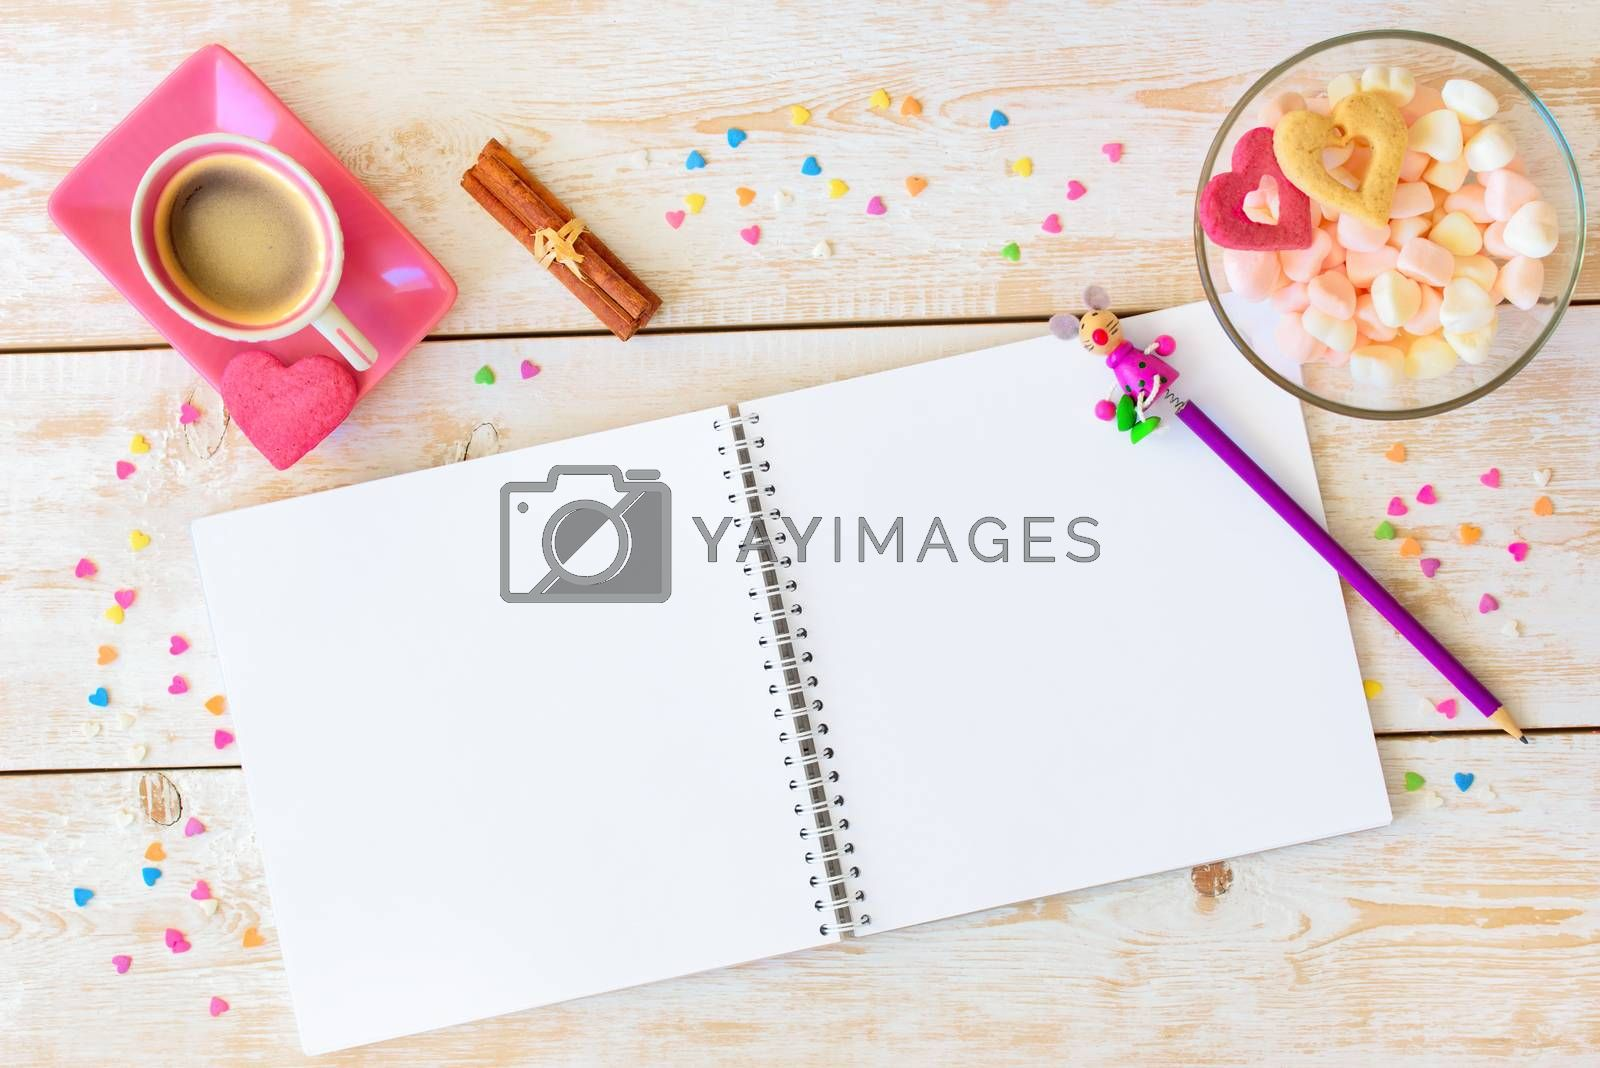 Blank paper on table. Blank sheet of paper, coffee cup, cookie, pencil on wood background. Design mockup